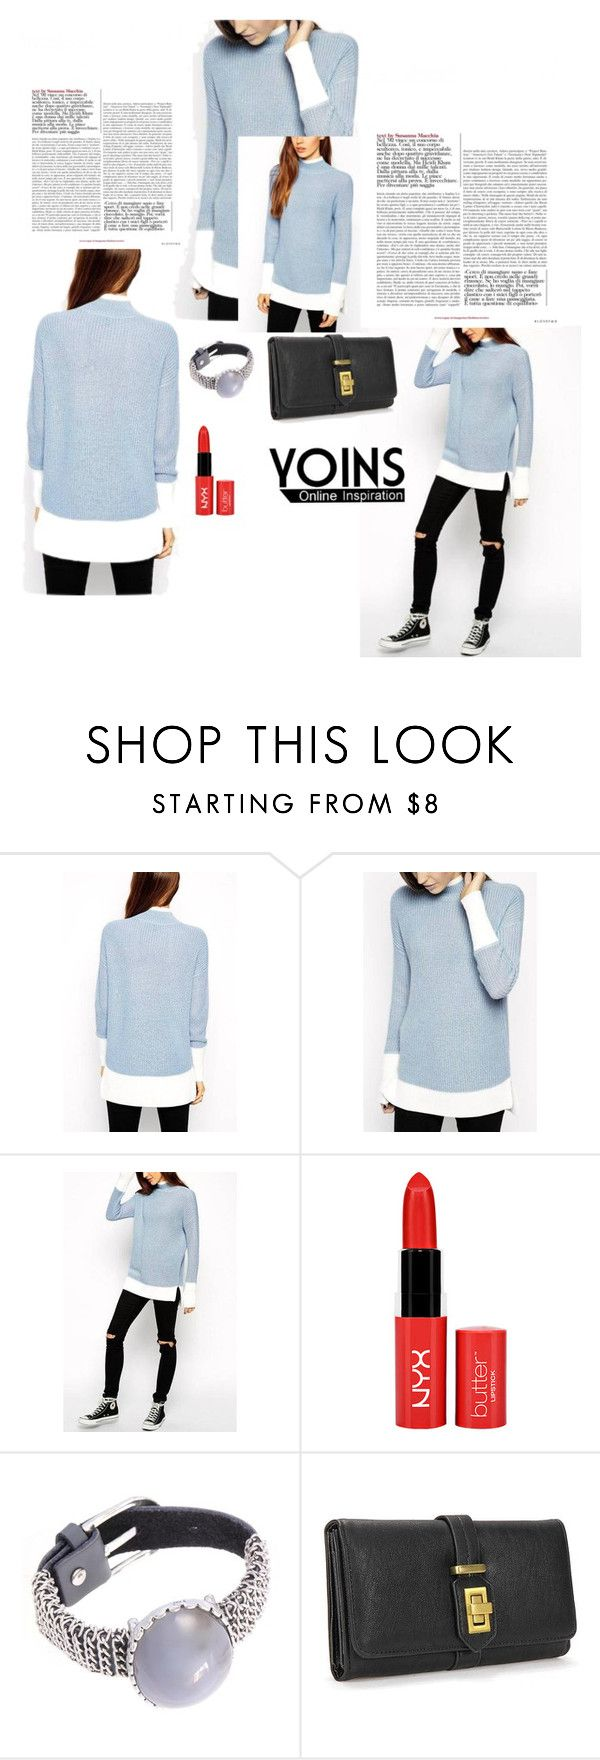 """Yoins Online Inspiration"" by ladymariah ❤ liked on Polyvore"